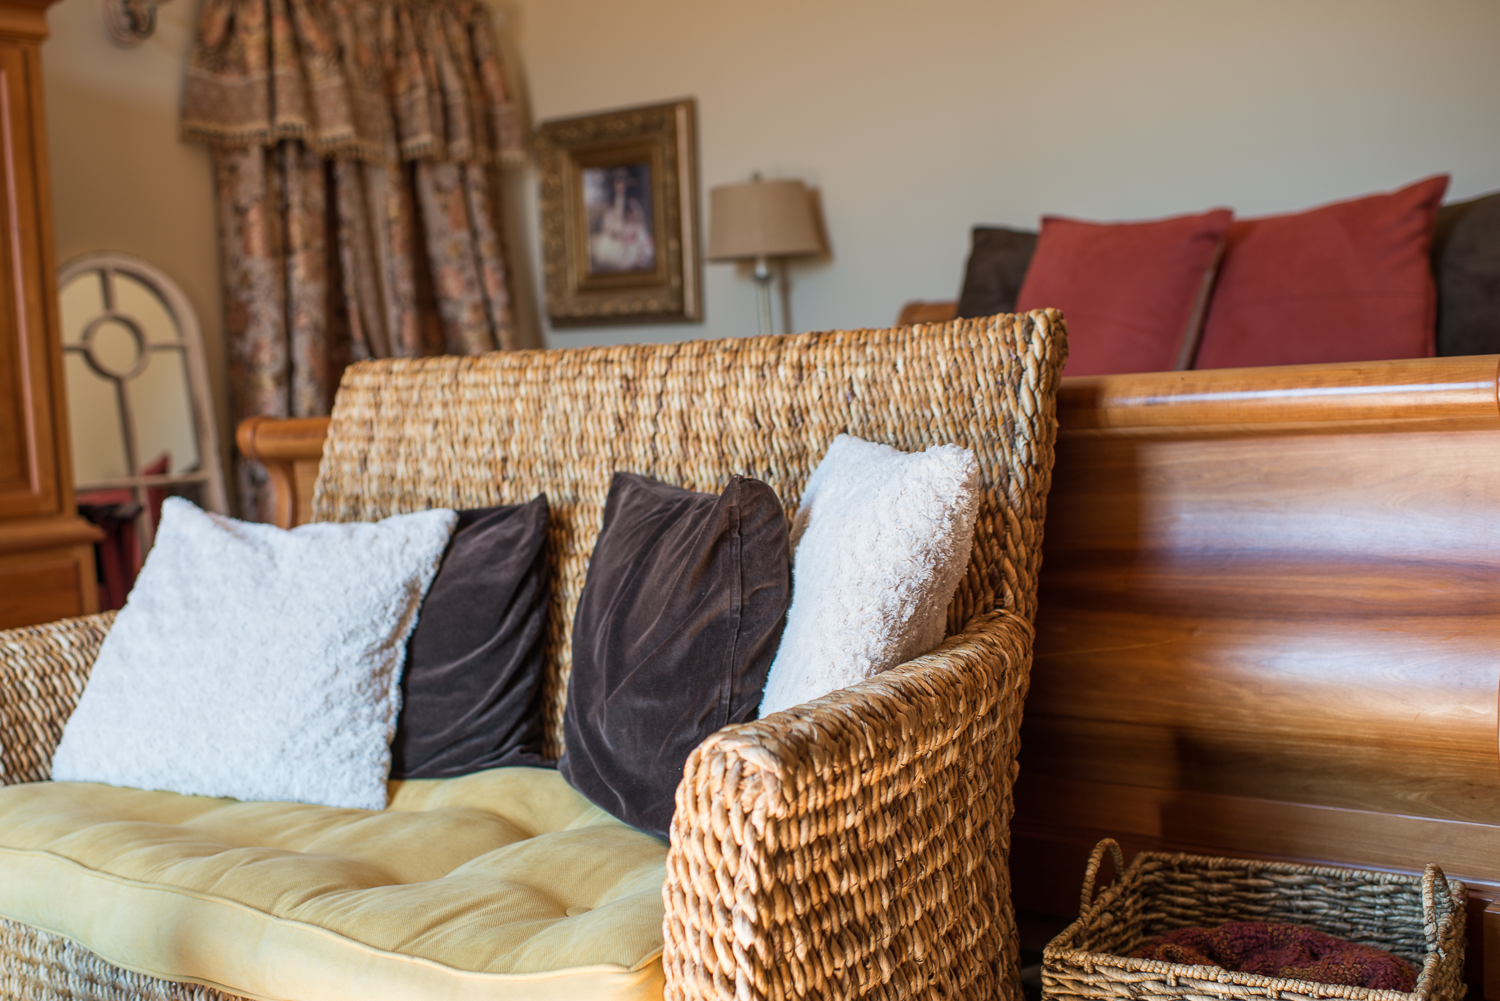 chair with pillows next to a bed